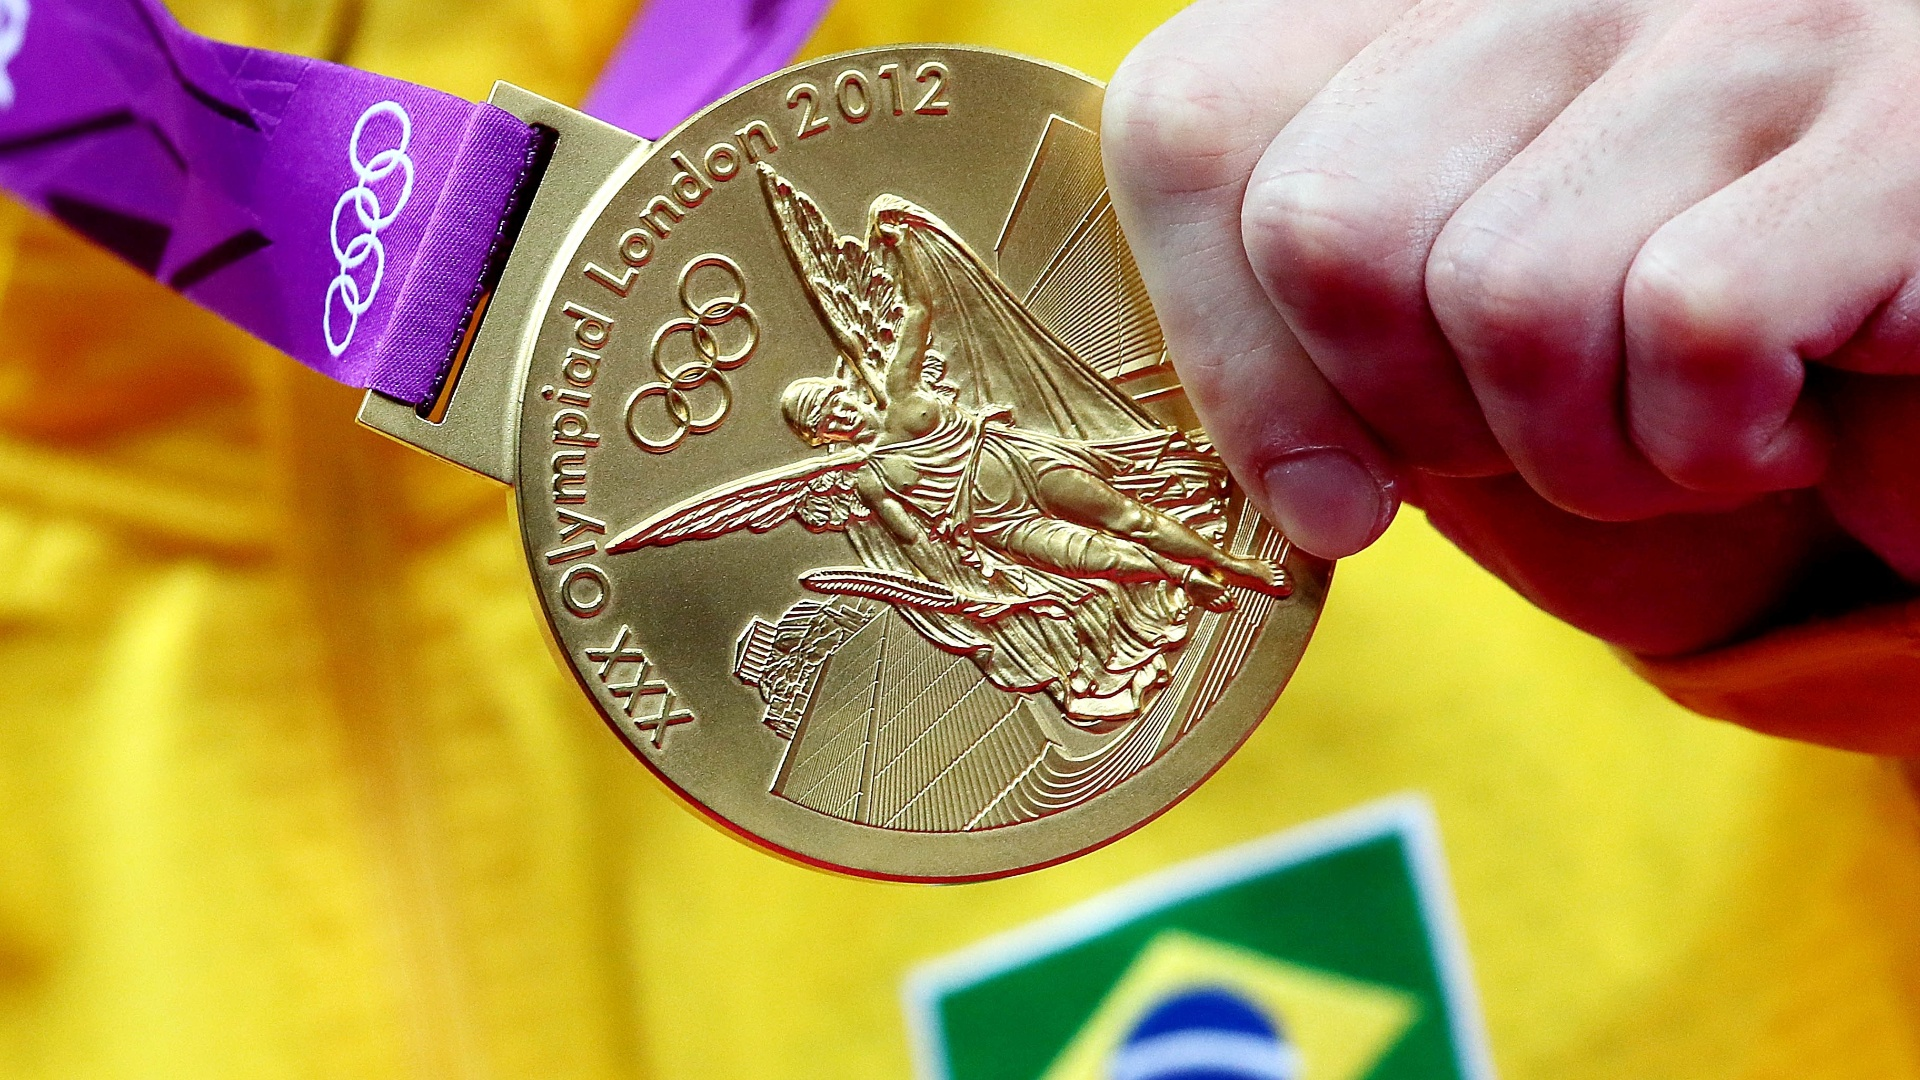 Arthur Zanetti mostra a medalha de ouro, a primeira da histria da ginstica brasileira